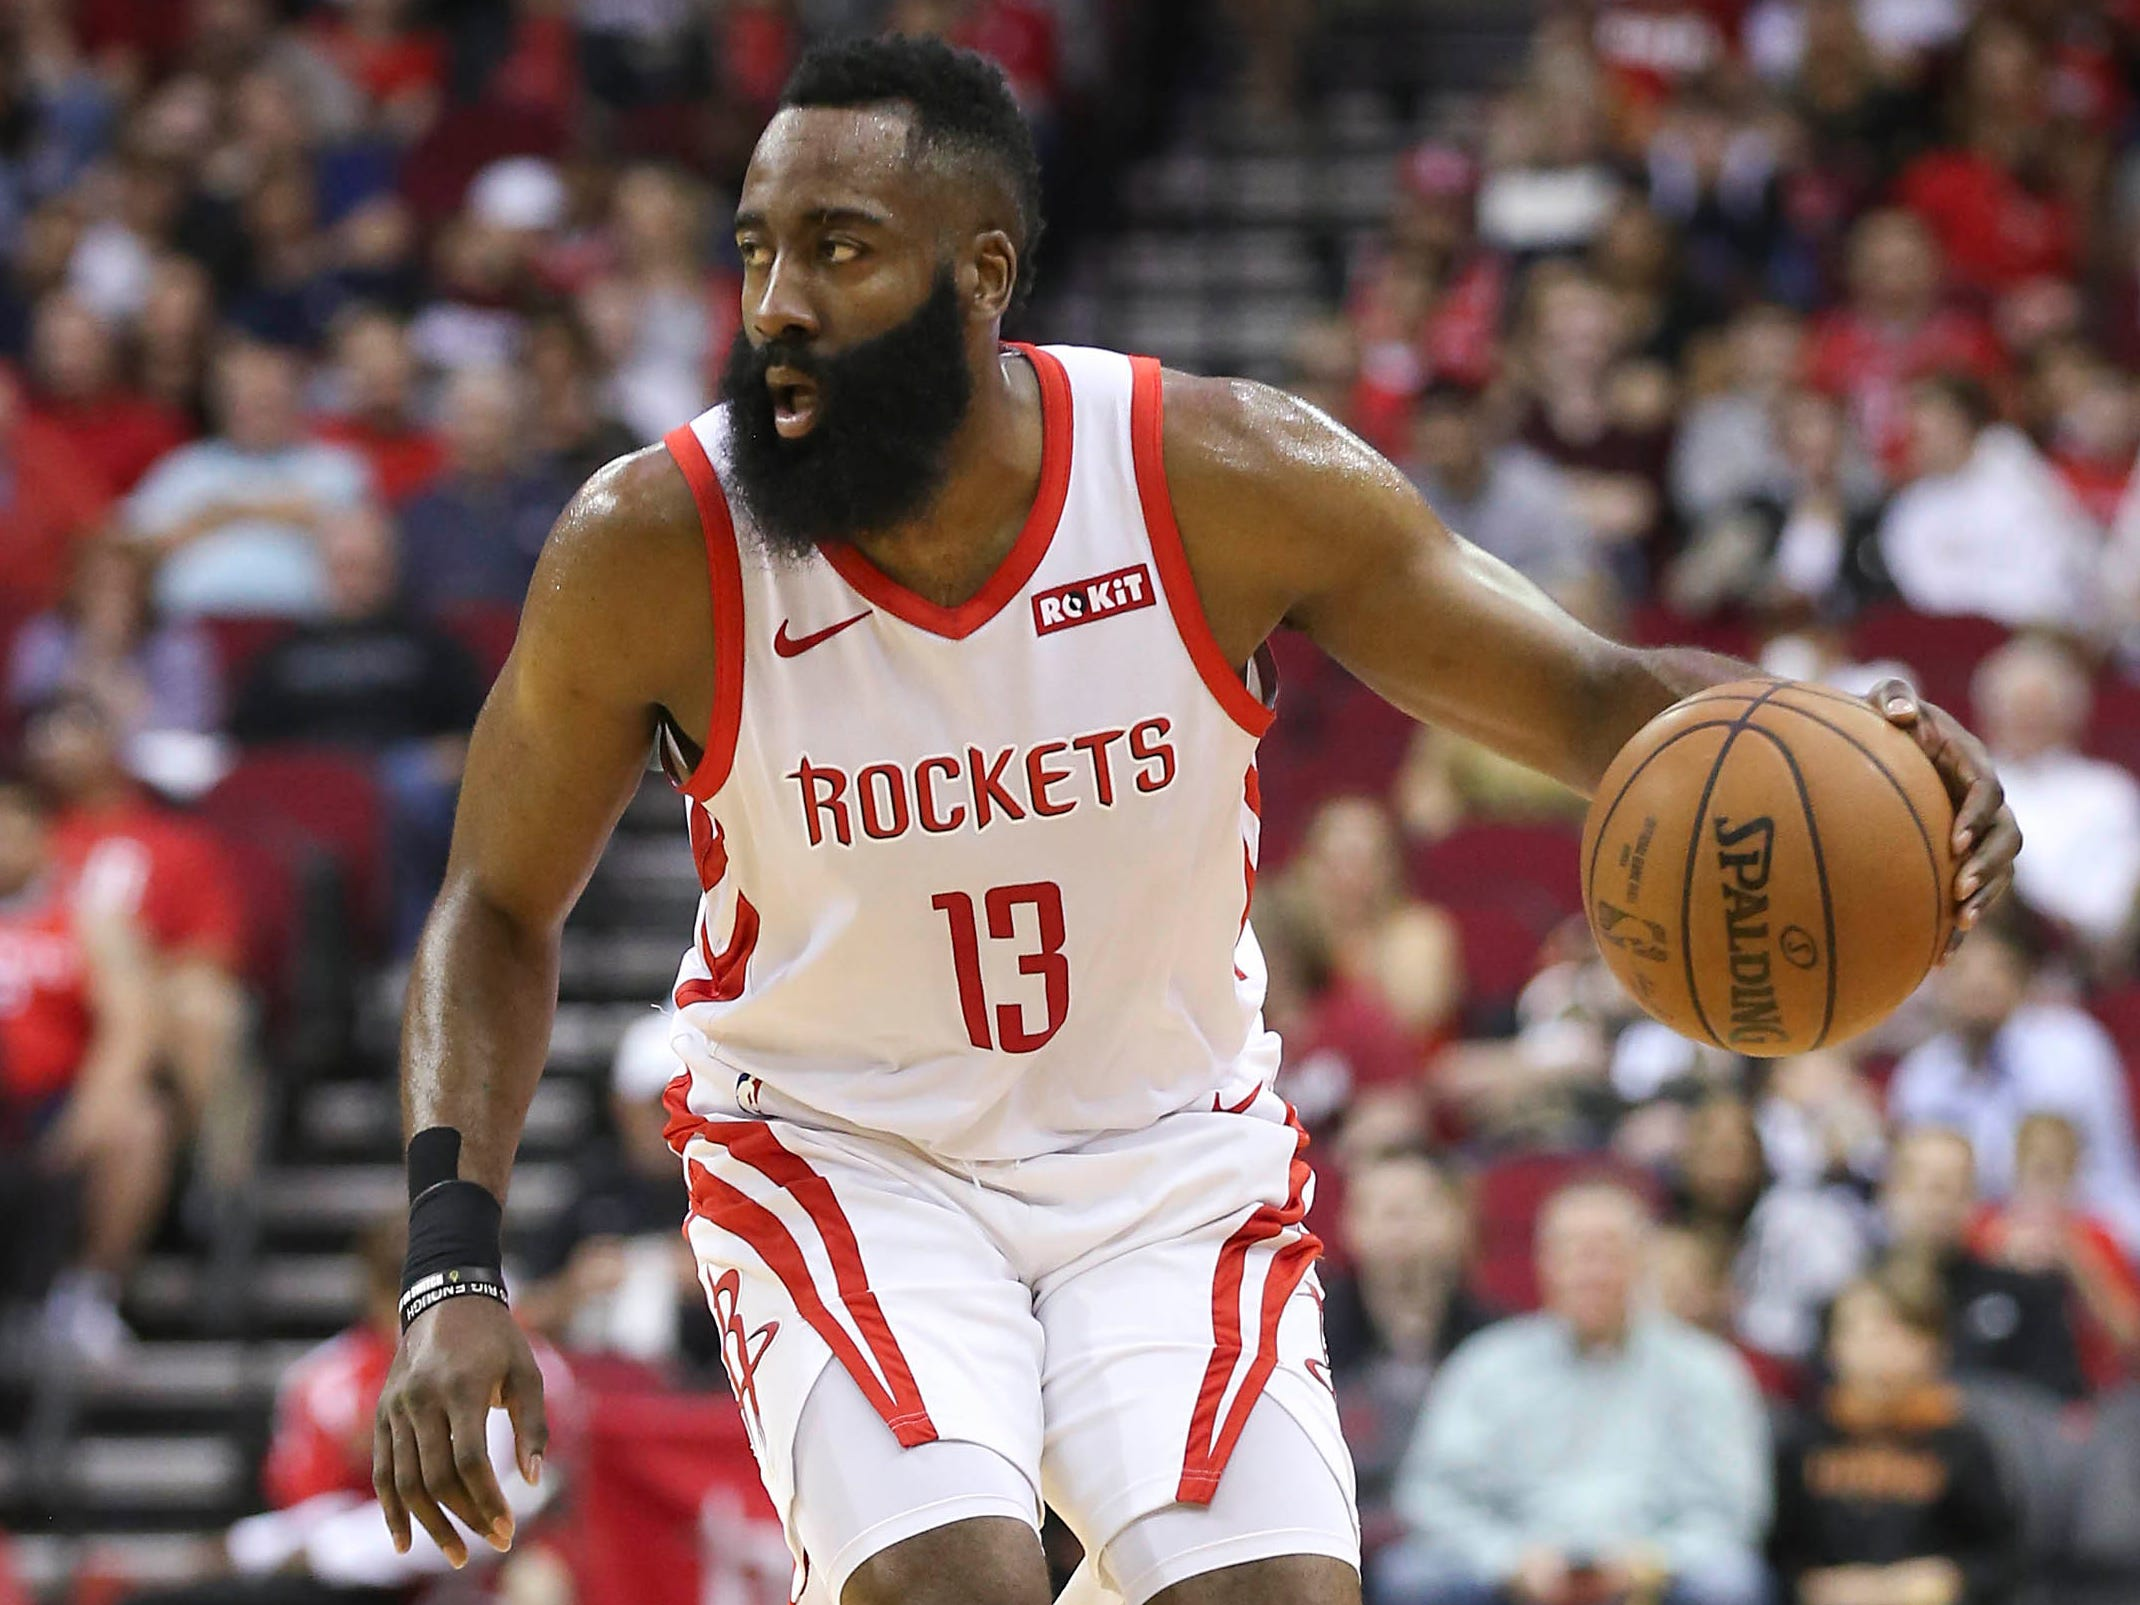 112. James Harden, Rockets (March 30): 50 points, 11 rebounds, 10 assists in 119-108 win over Kings (seventh of season).